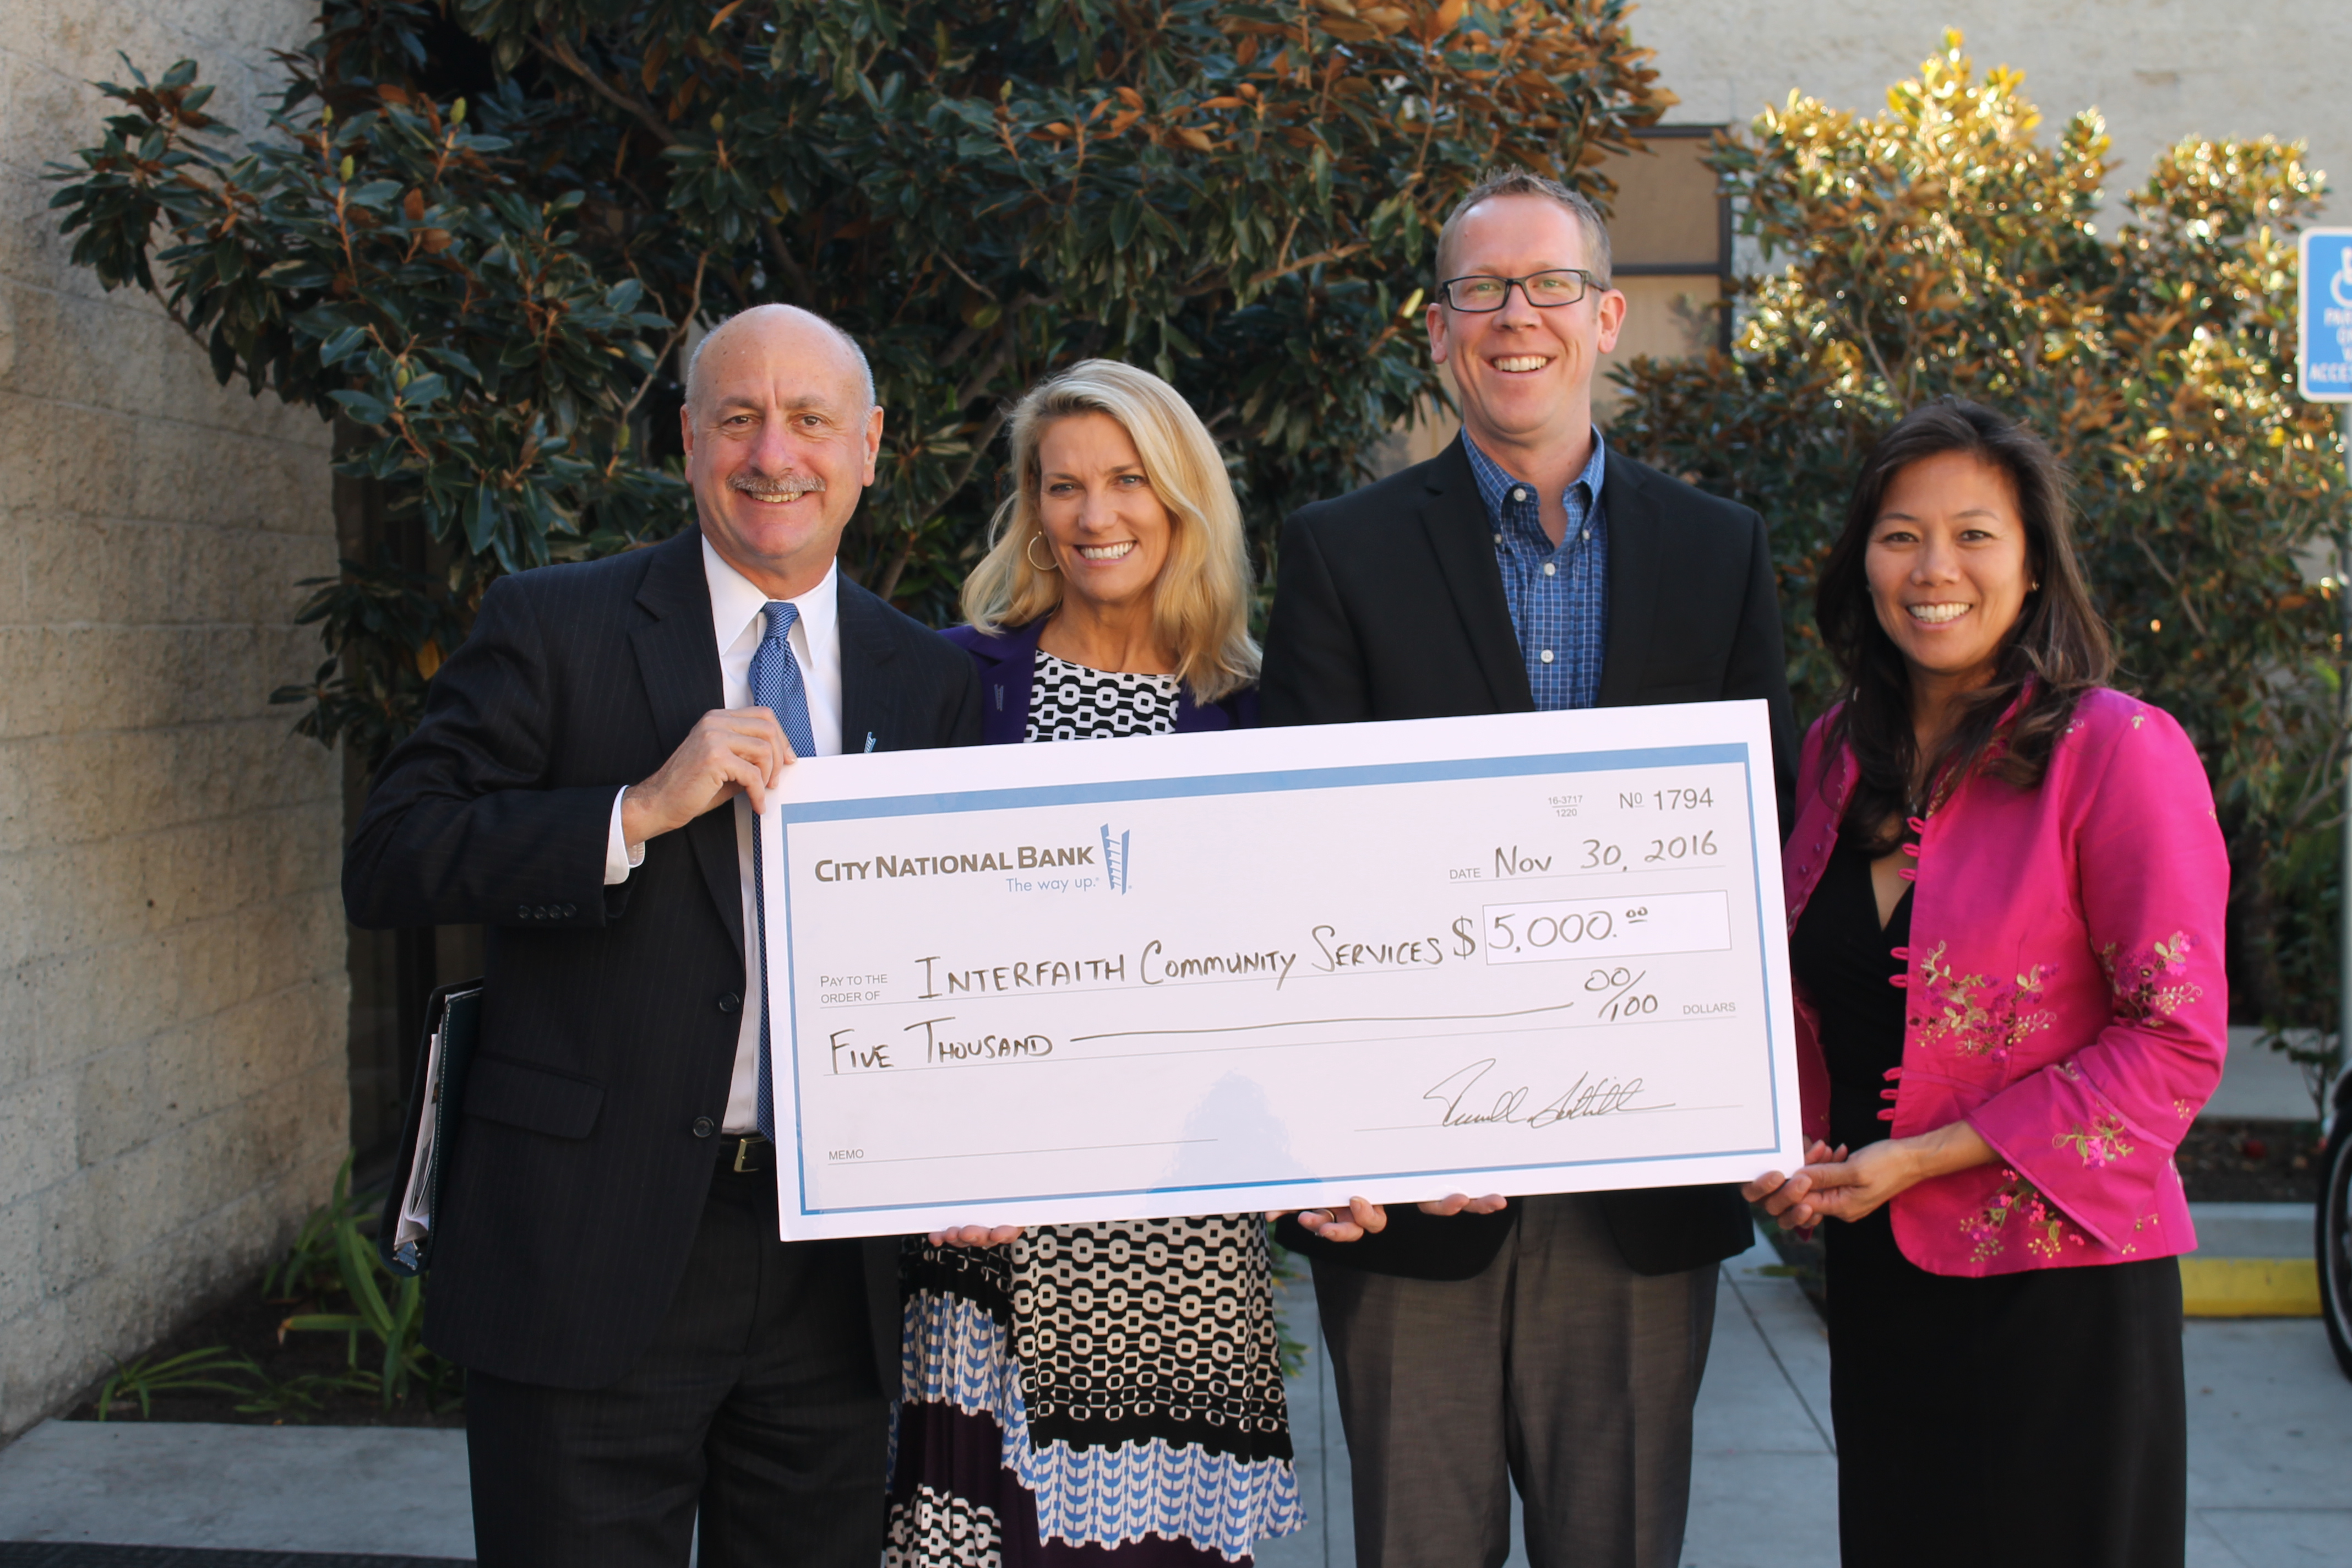 City National Bank dontes $5,000 to interfaith holding large check